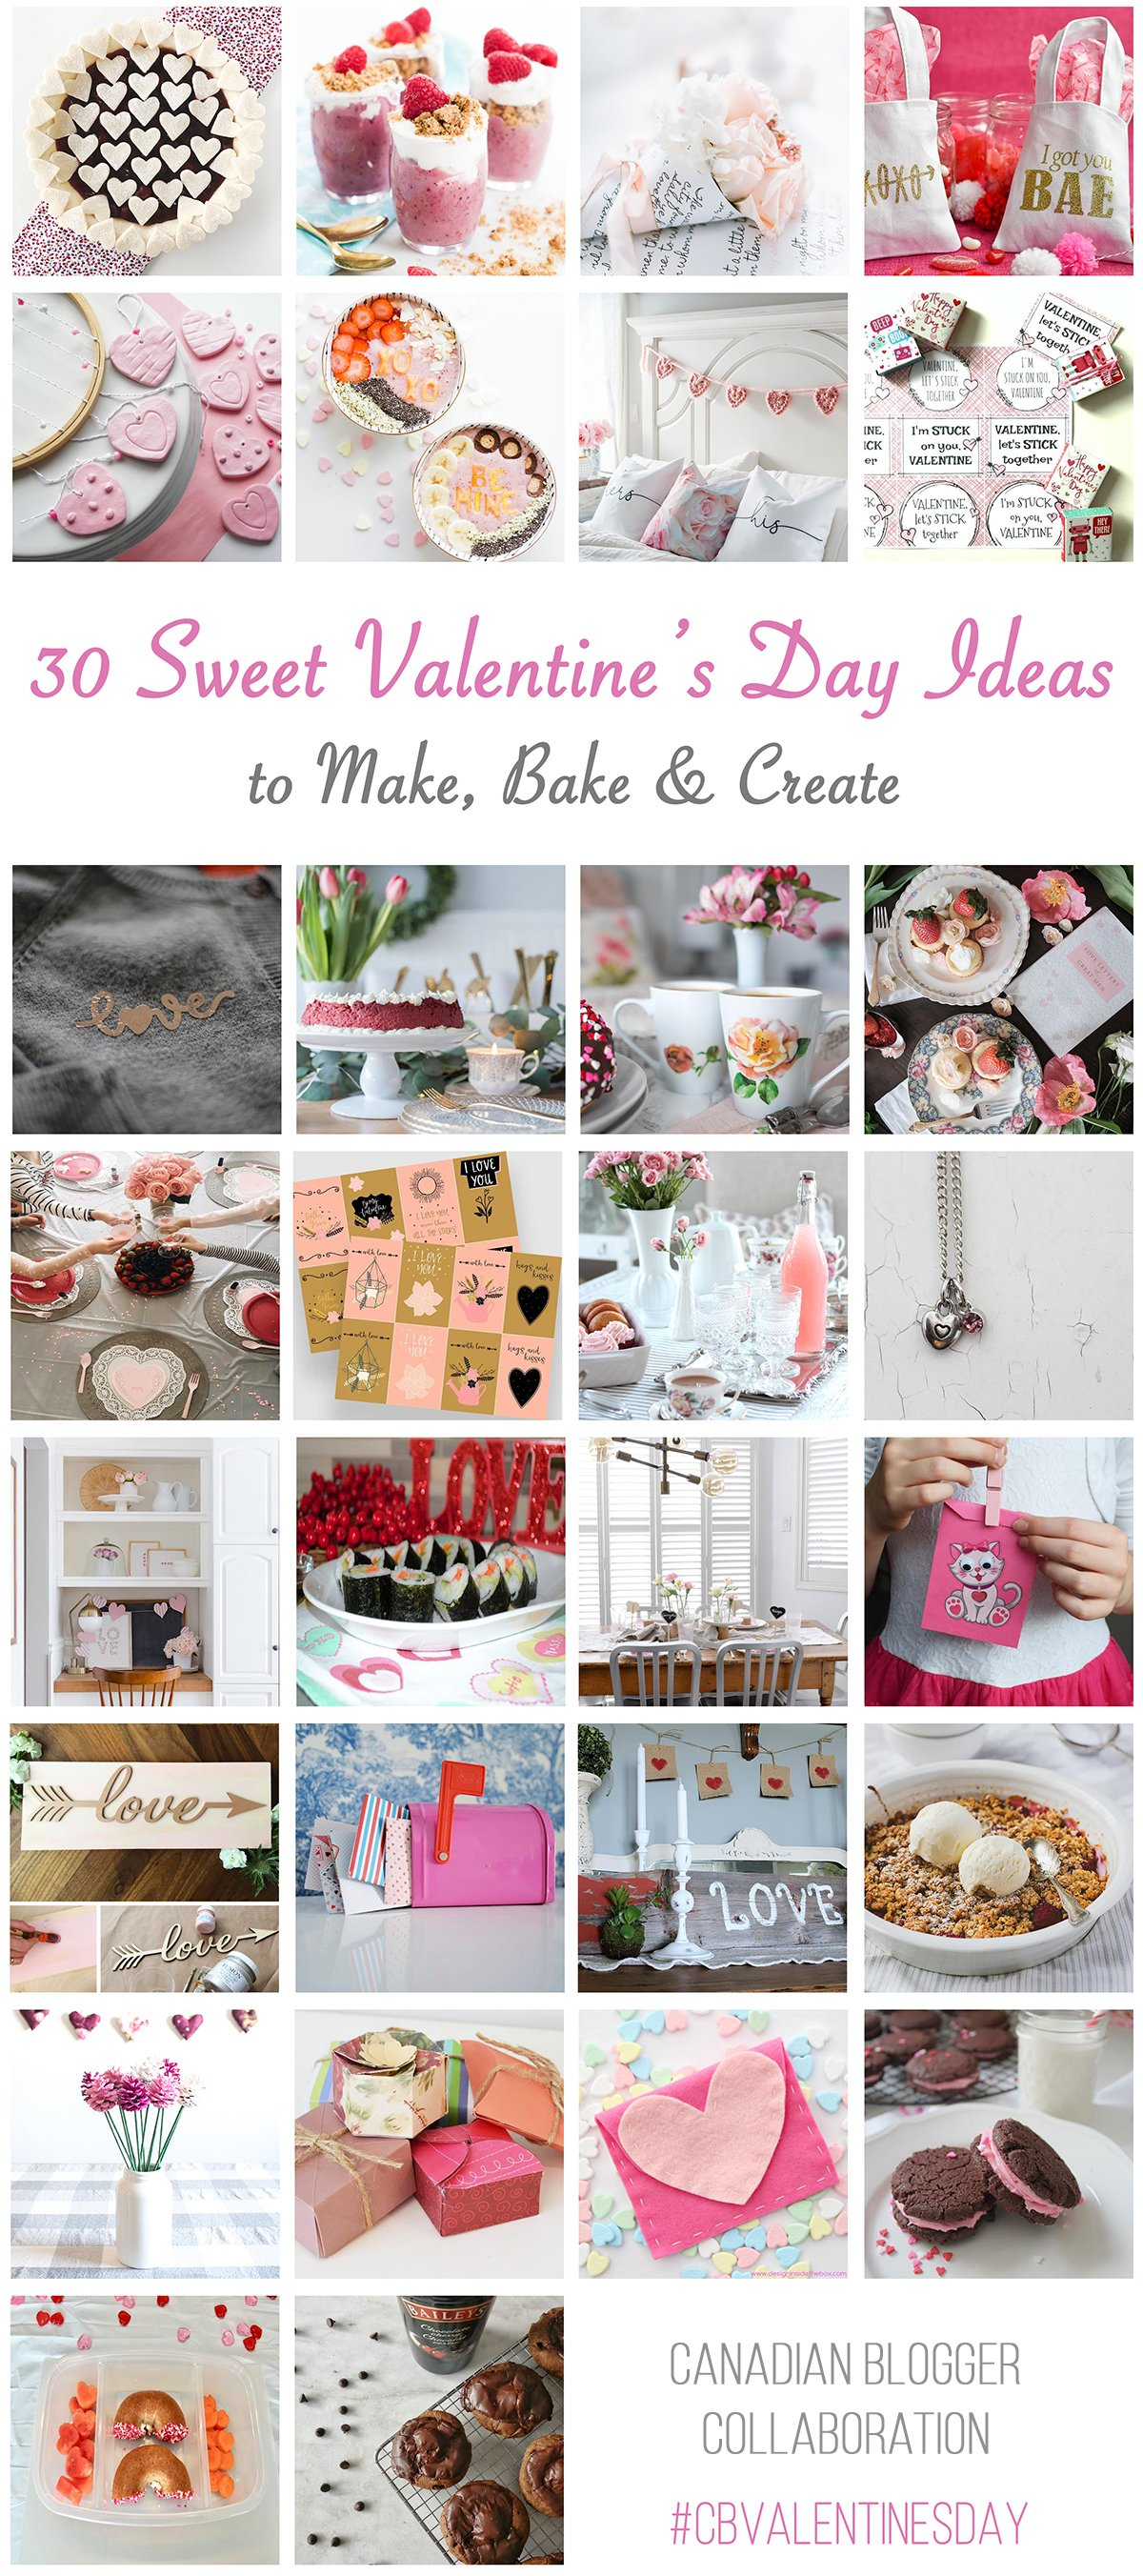 30 Valentine's Day Ideas to Make, Bake & Create